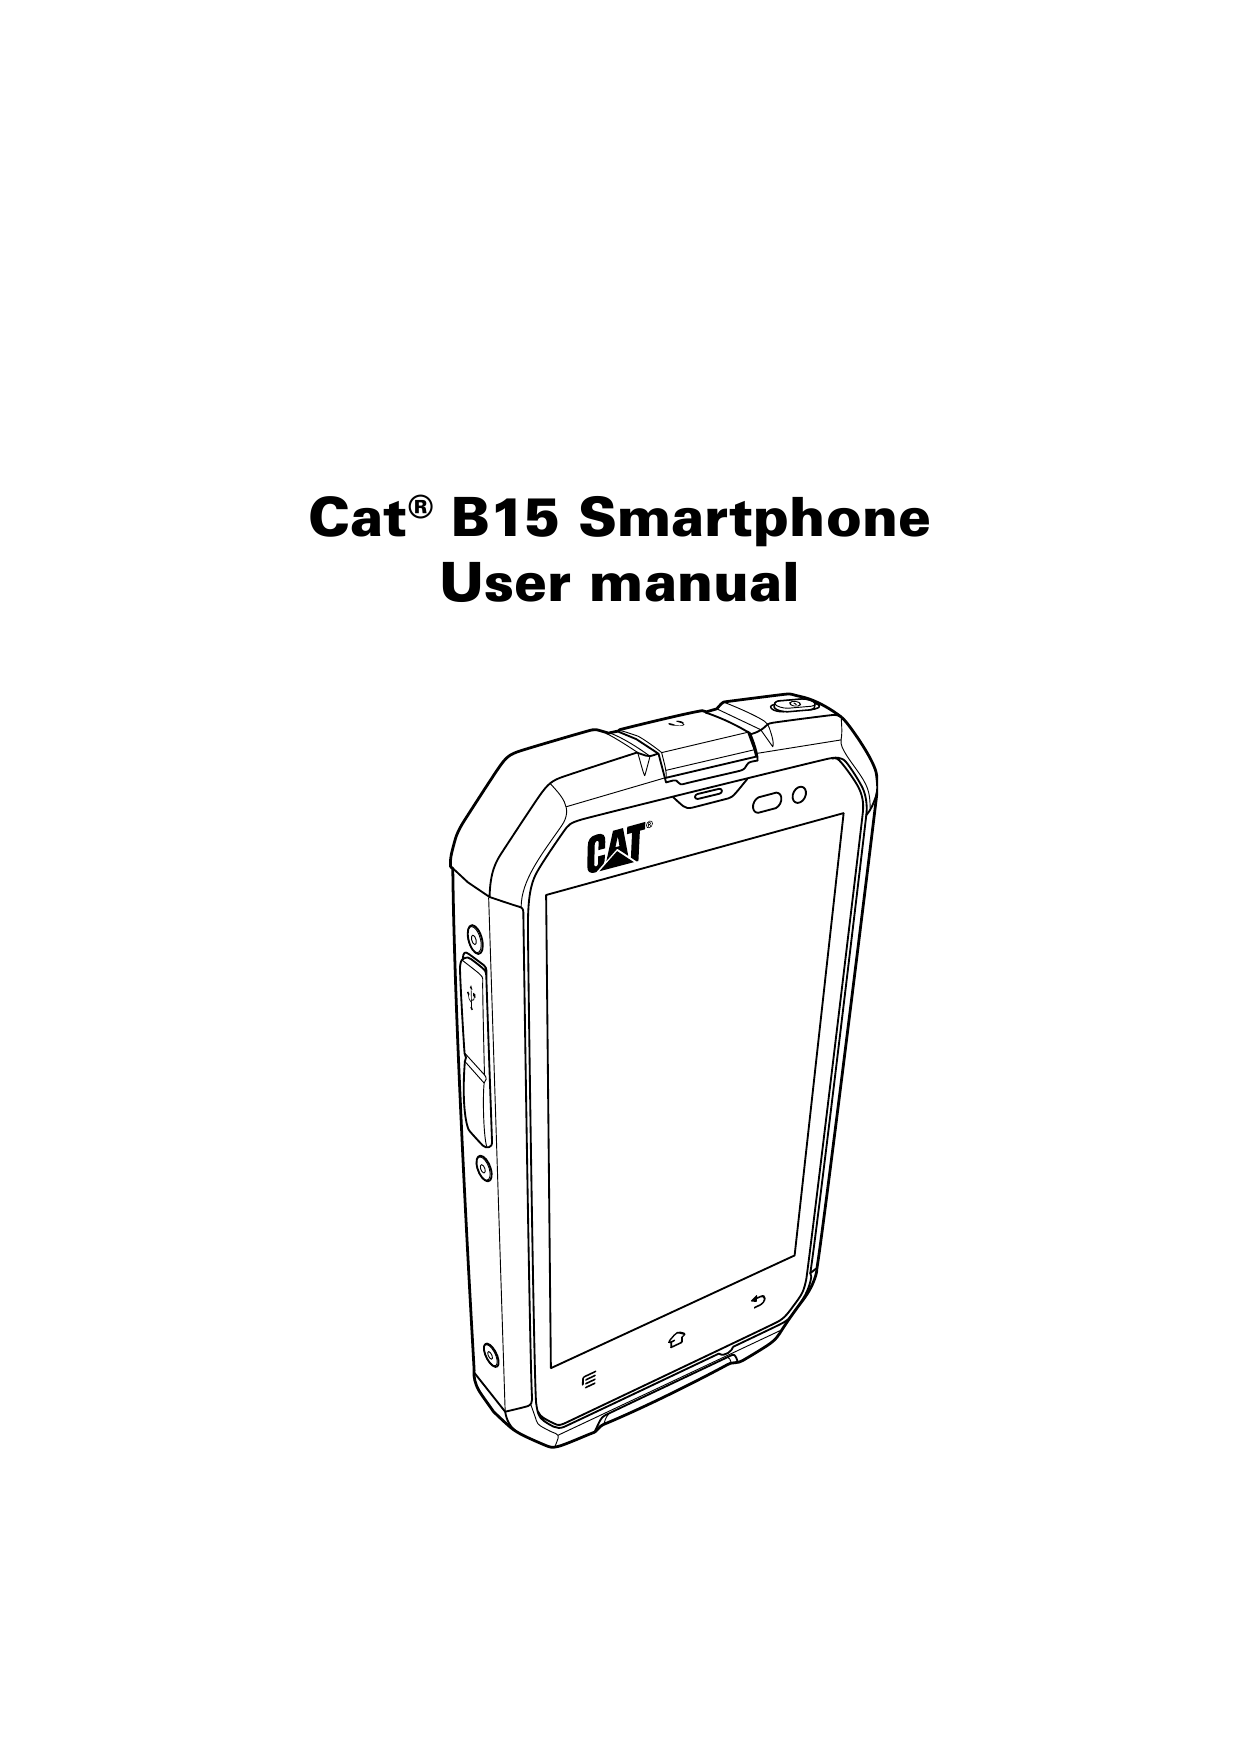 Cat® B15 SmartphoneUser manual